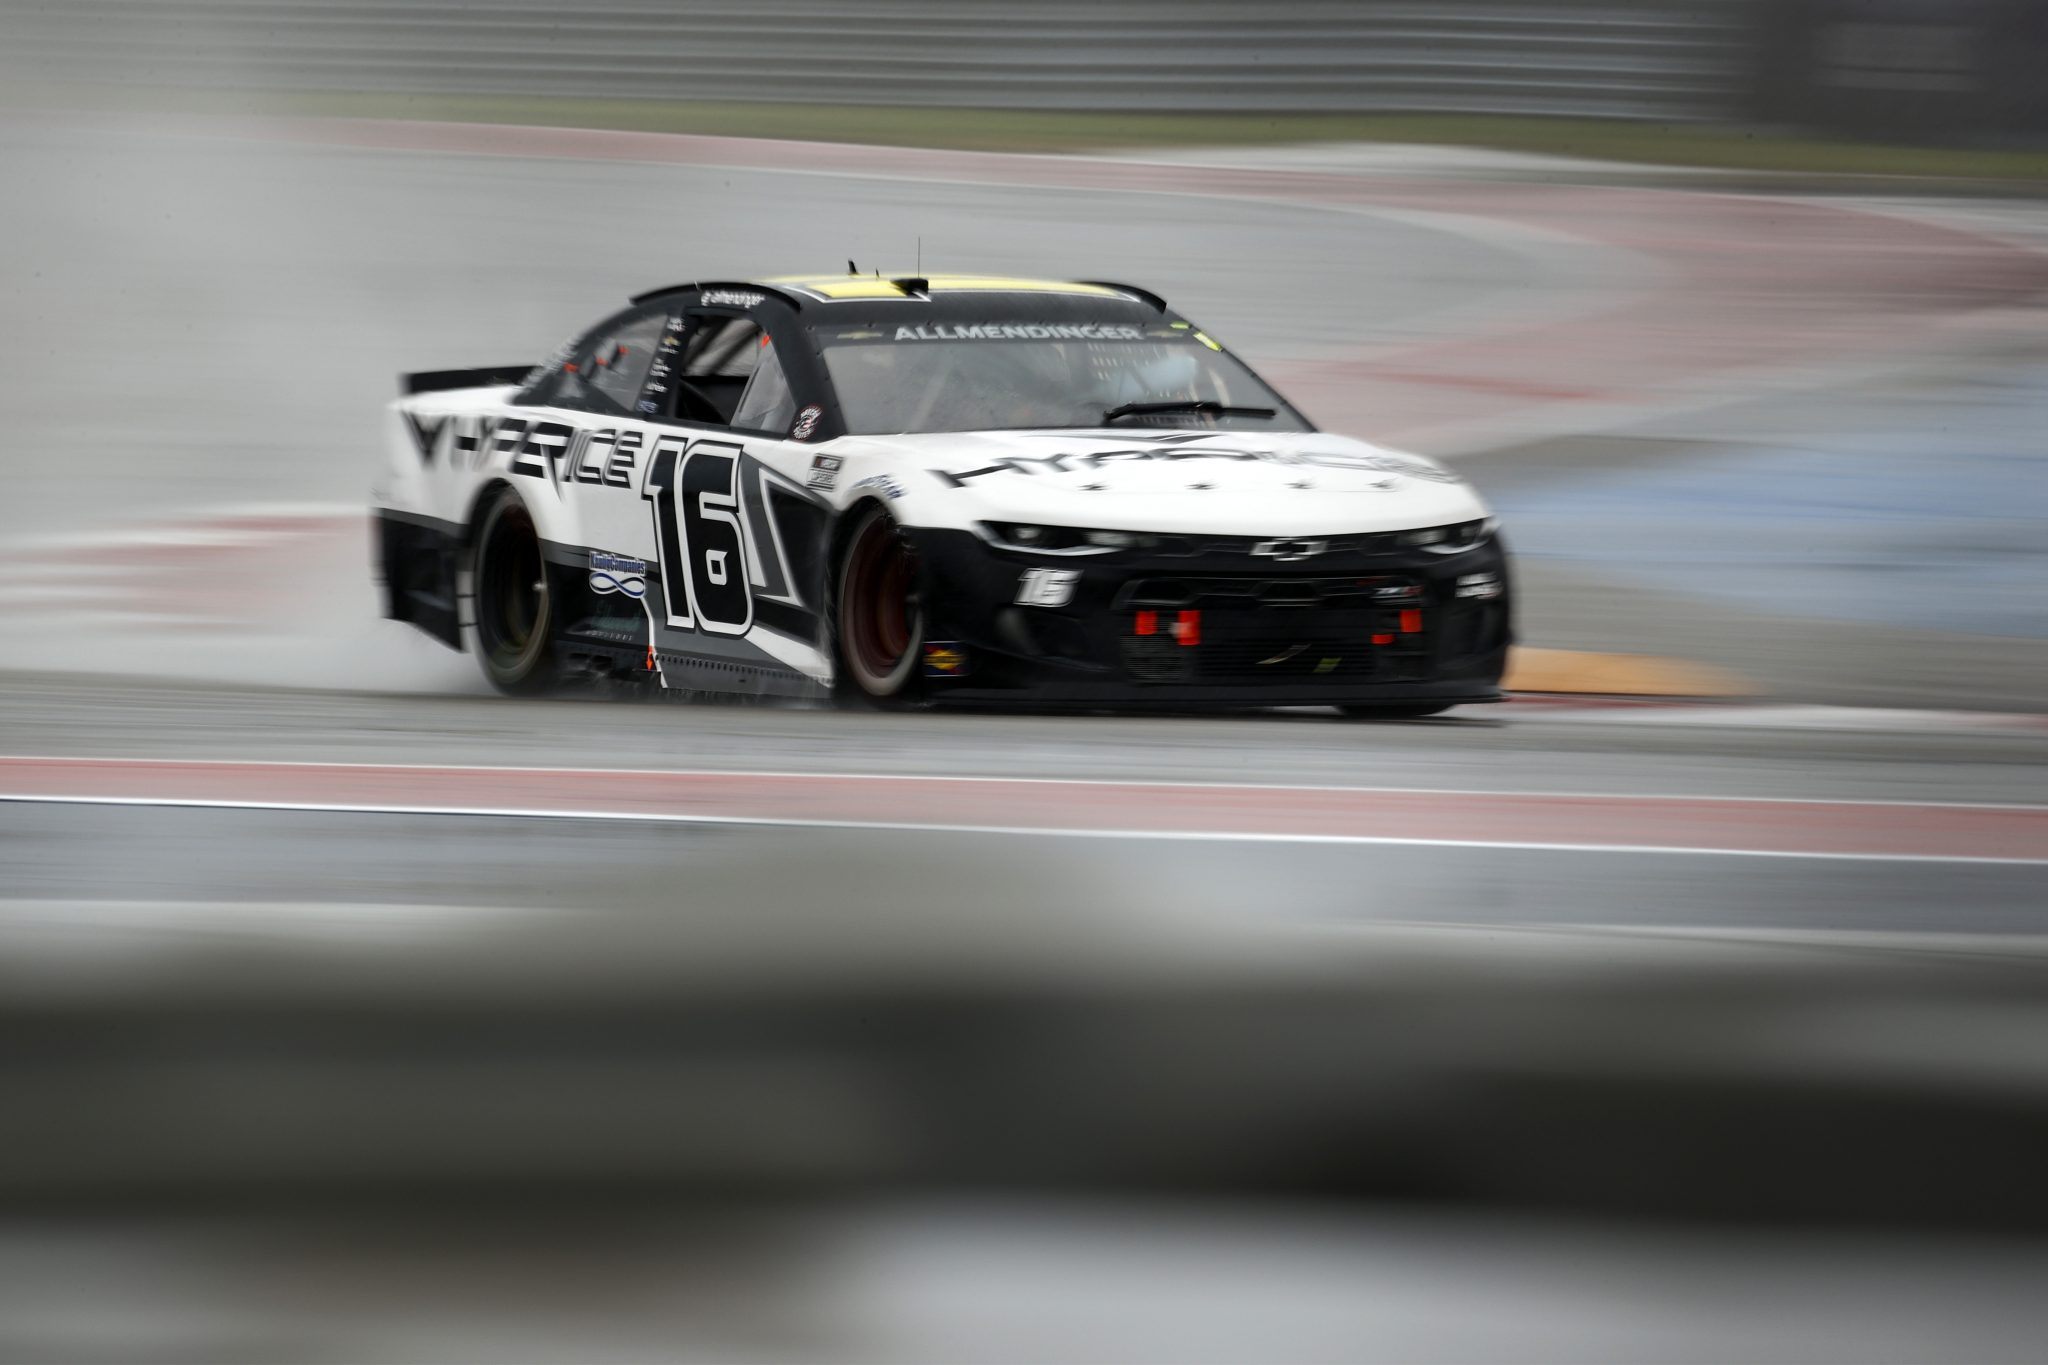 AUSTIN, TEXAS - MAY 23: AJ Allmendinger, driver of the #16 Hyperice Chevrolet, drives during the NASCAR Cup Series EchoPark Texas Grand Prix at Circuit of The Americas on May 23, 2021 in Austin, Texas. (Photo by Jared C. Tilton/Getty Images)   Getty Images